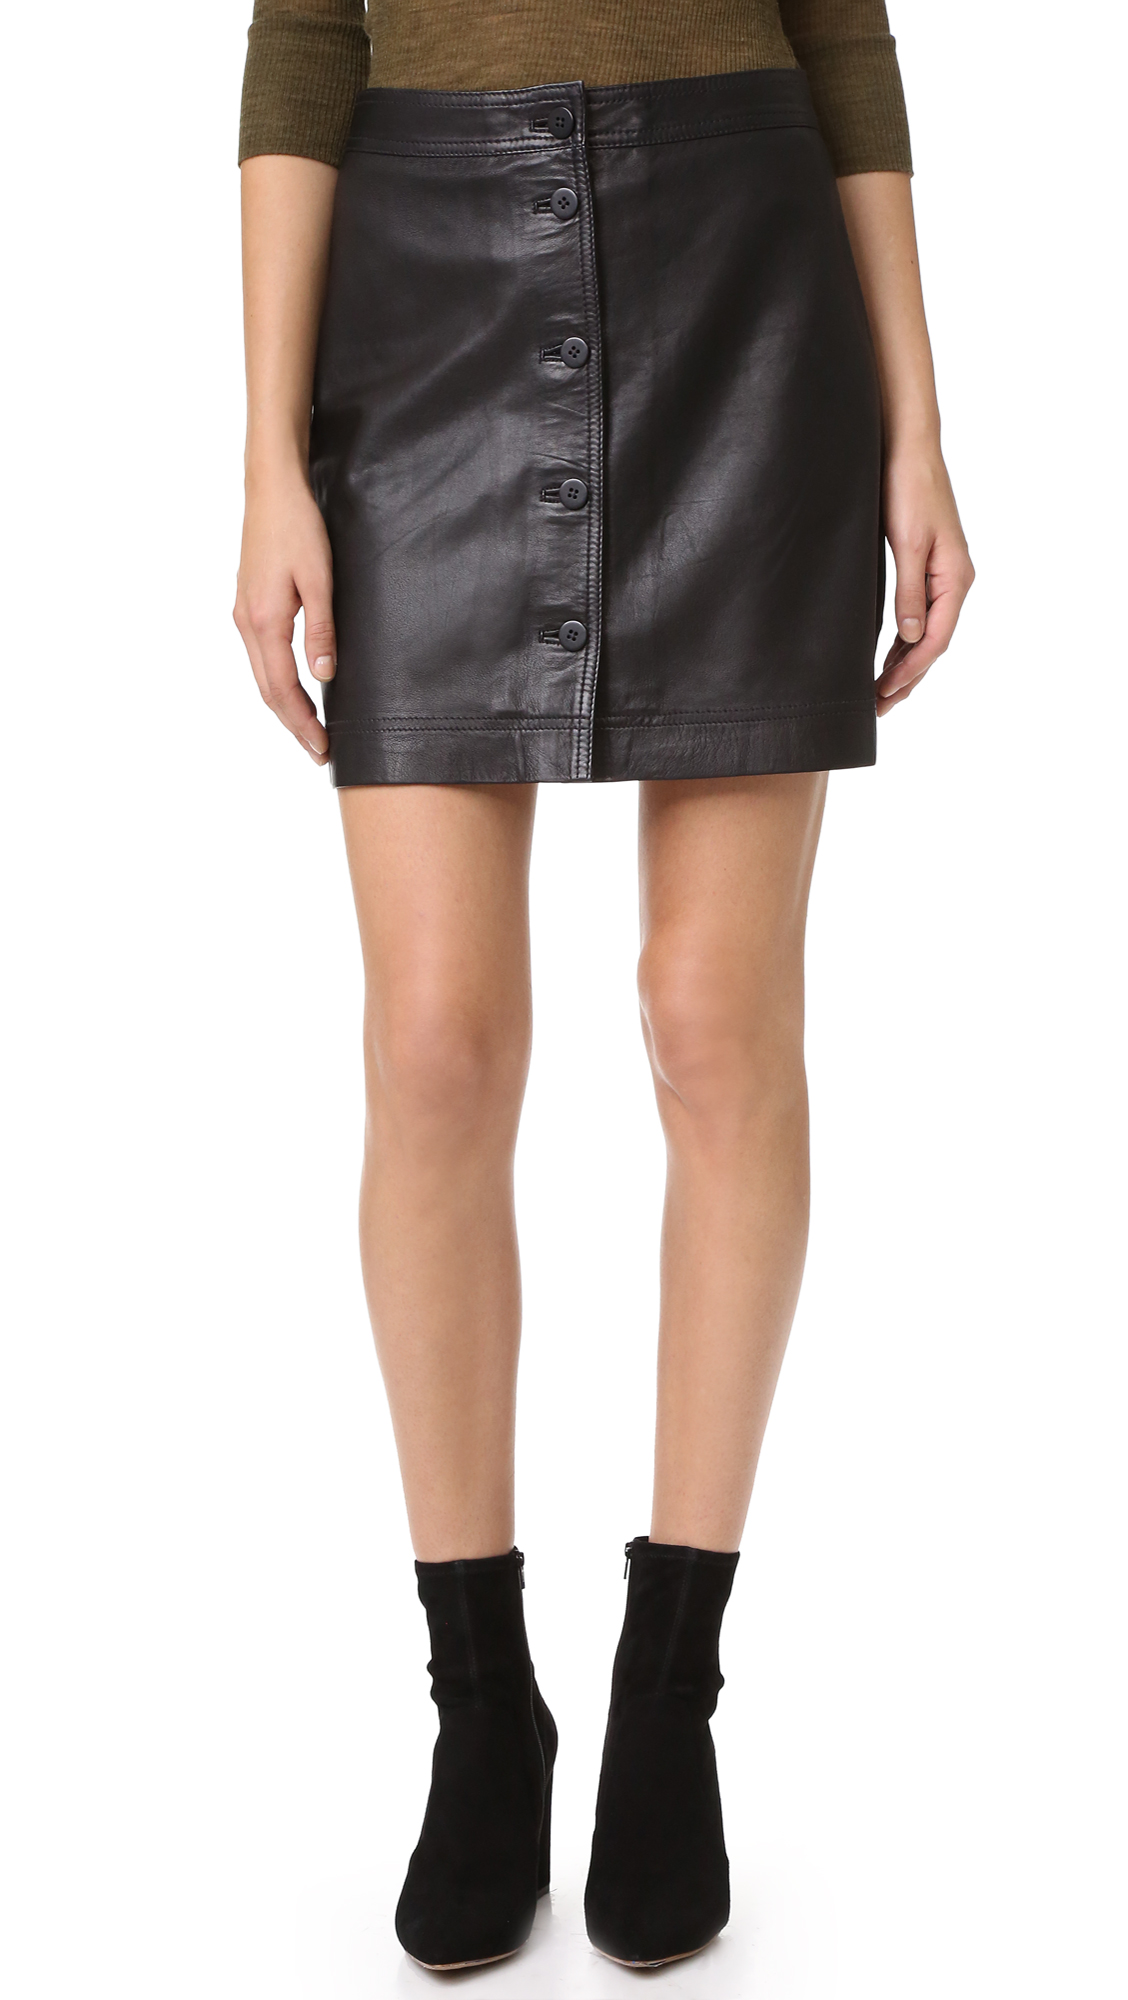 A supple leather Madewell miniskirt, styled with a full length, button front closure. Lined. Fabric: Leather. Shell: 100% lambskin. Lining: 100% polyester. Leather clean. Imported, India. Measurements Length: 17.25in / 44cm Measurements from size 4. Available sizes: 0